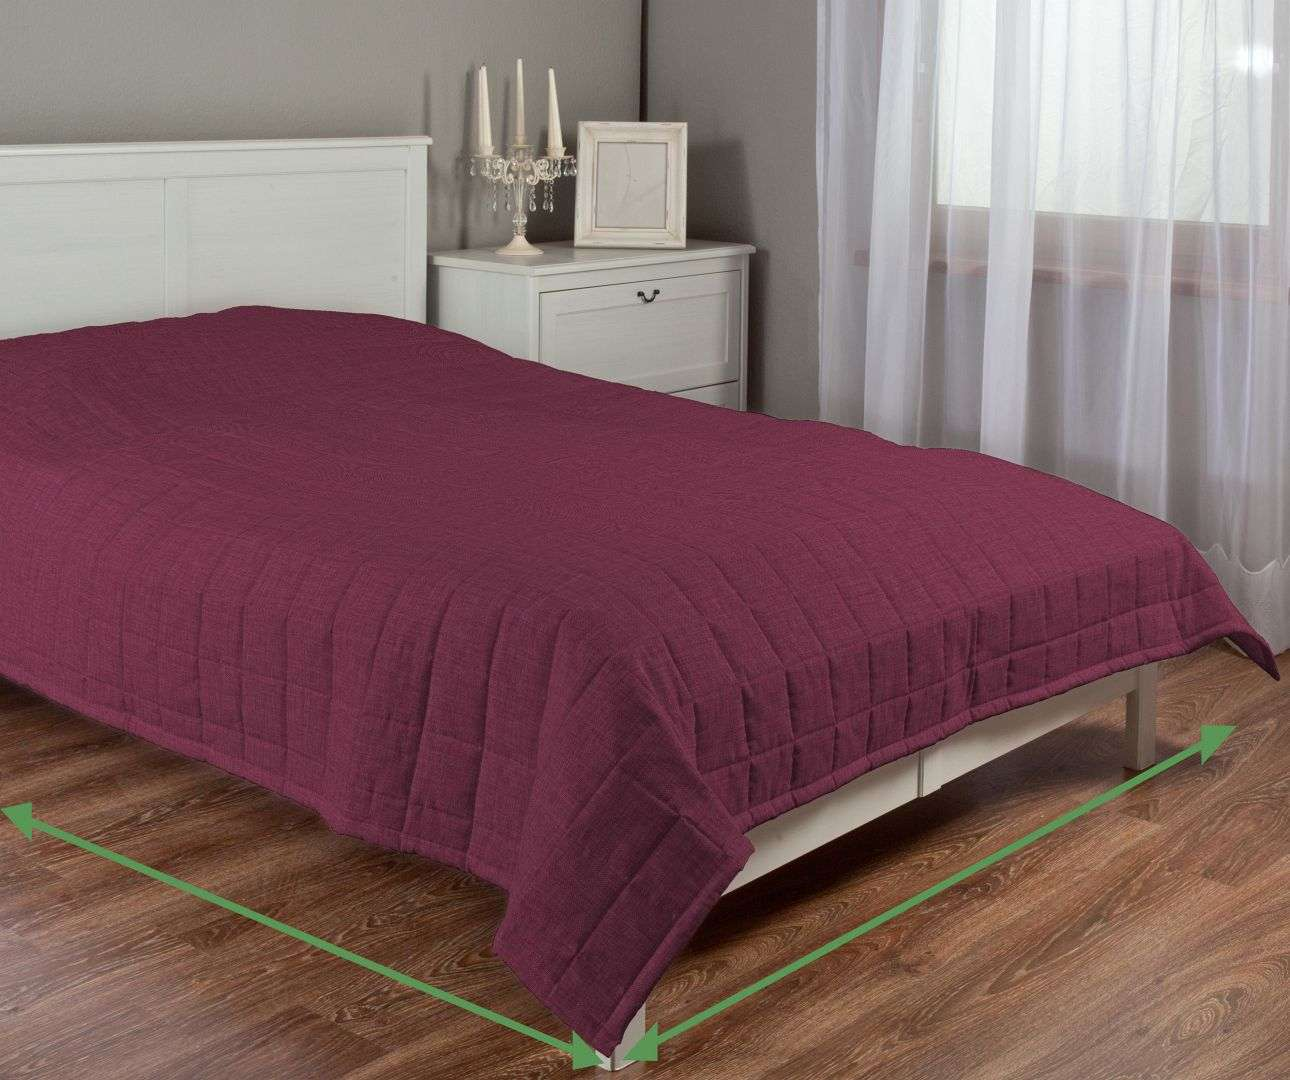 Quilted throw (check quilt pattern) in collection Porto, fabric: 160-44